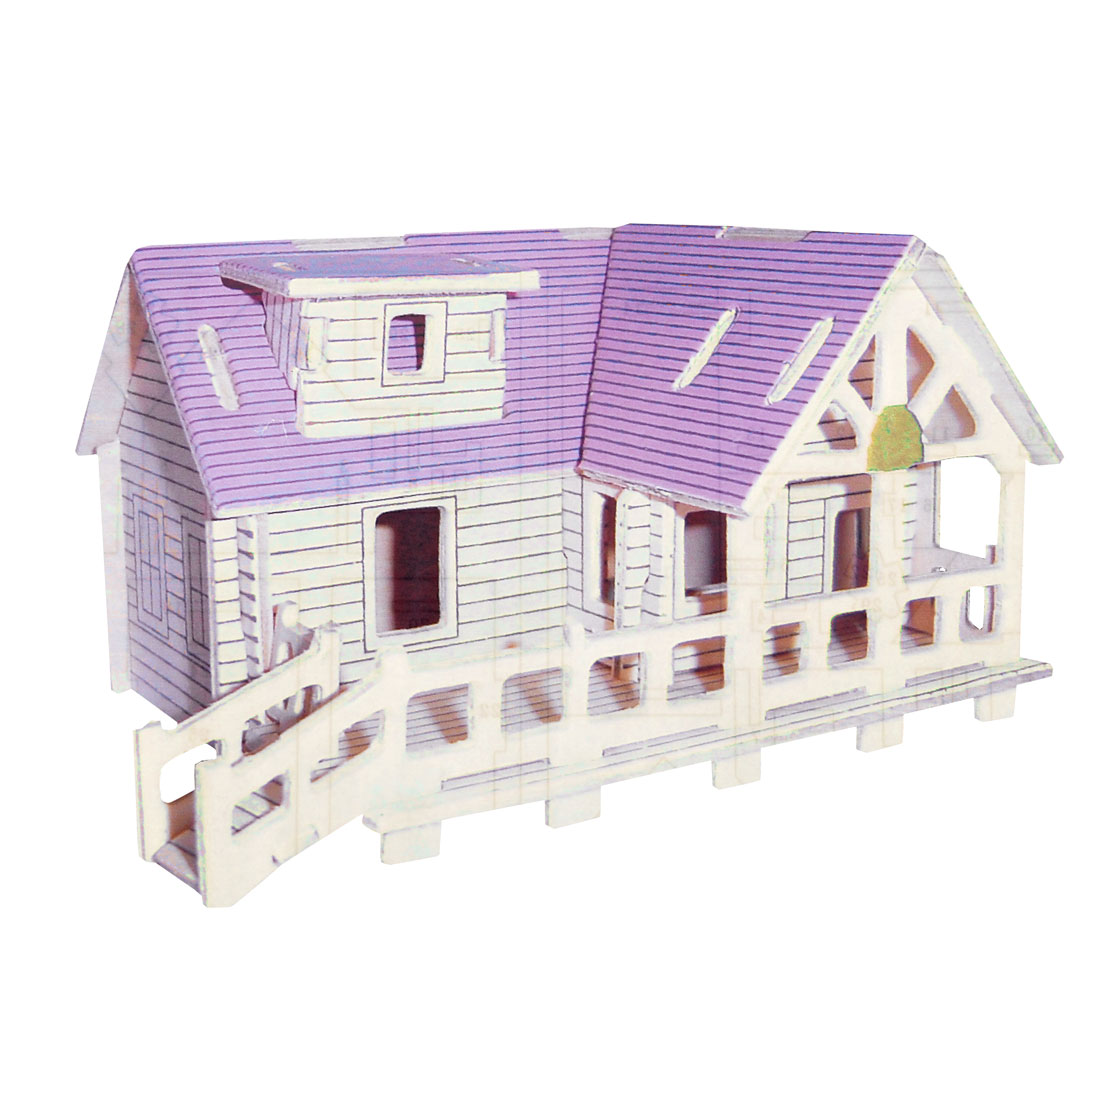 Purple Wood Villa Design Woodcraft Construction Kit Puzzle Toy for Child